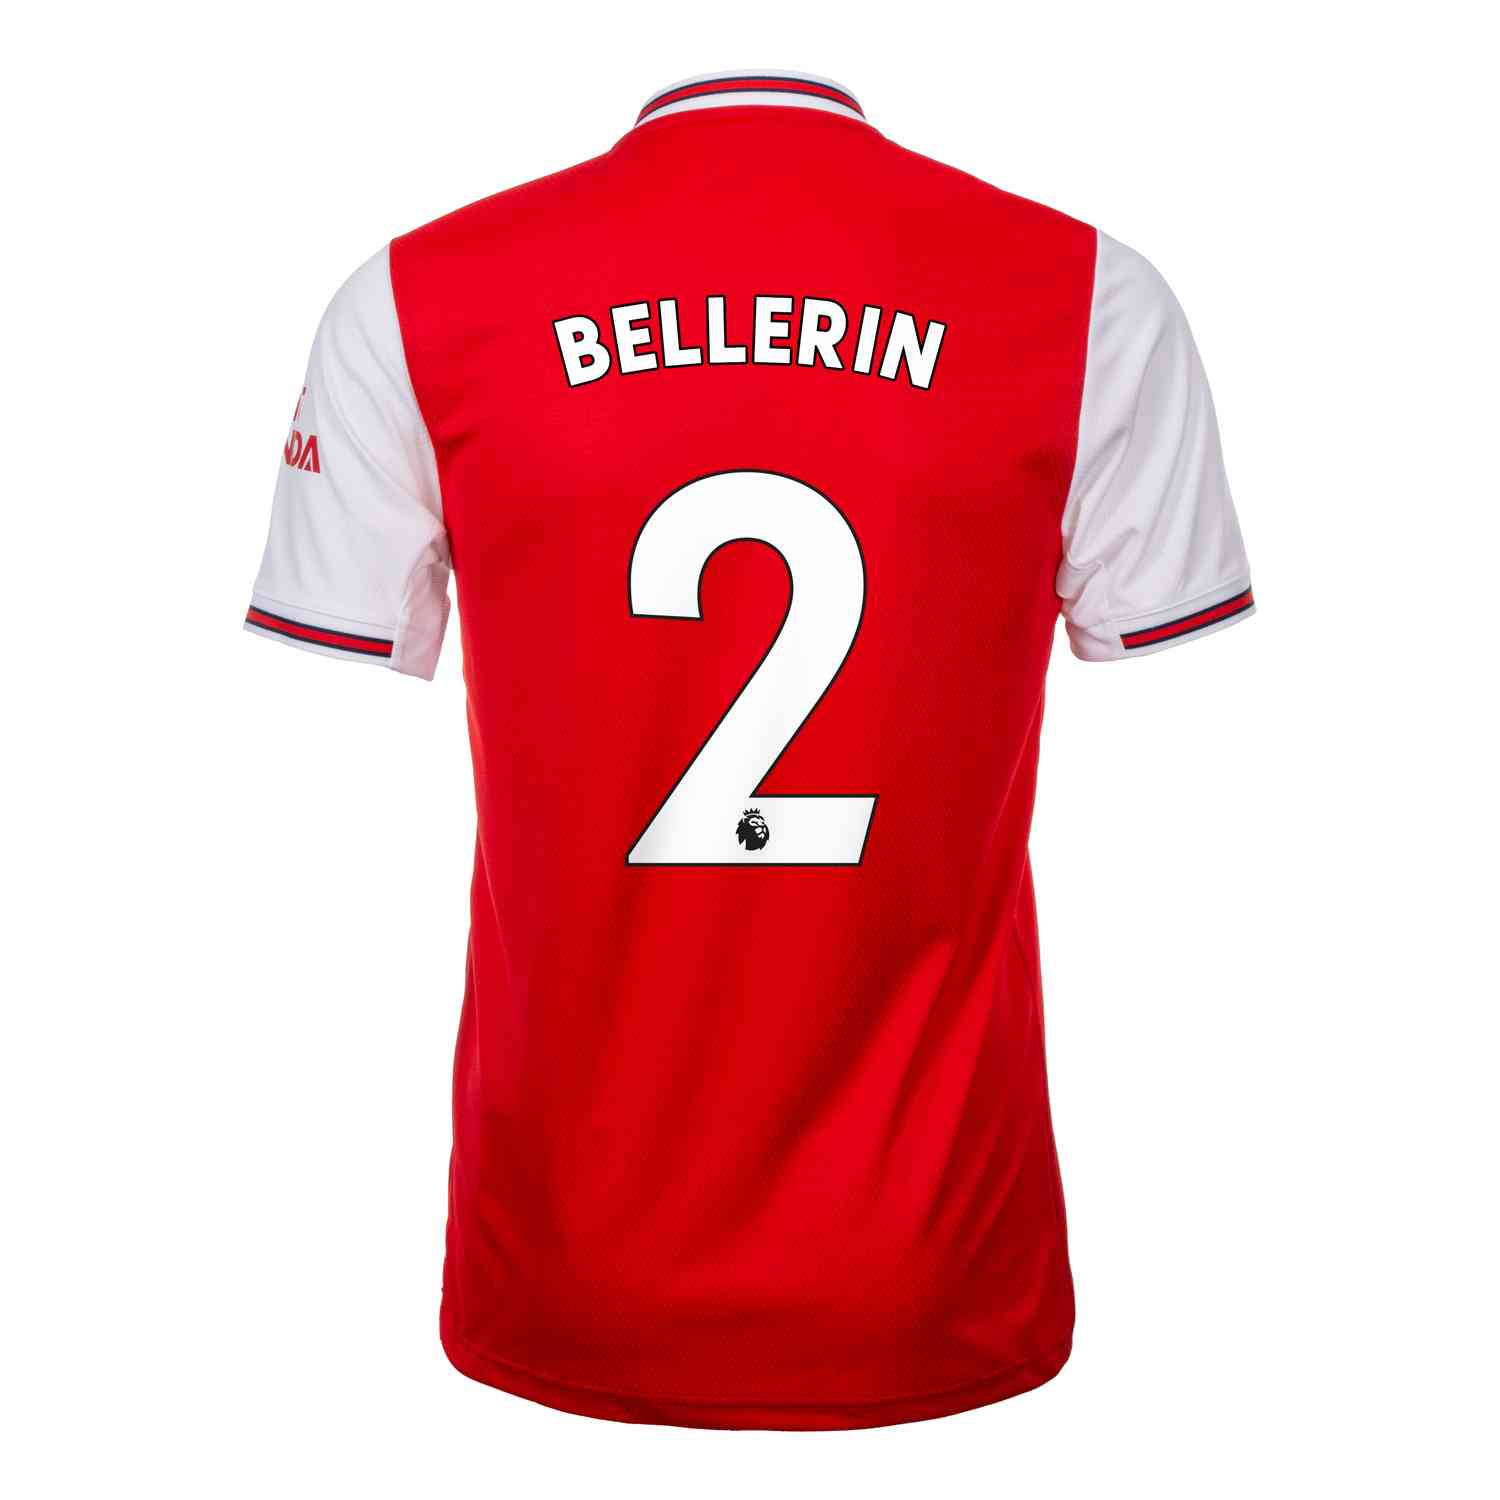 separation shoes c9aa6 10b38 2019/20 Hector Bellerin Arsenal Home Jersey